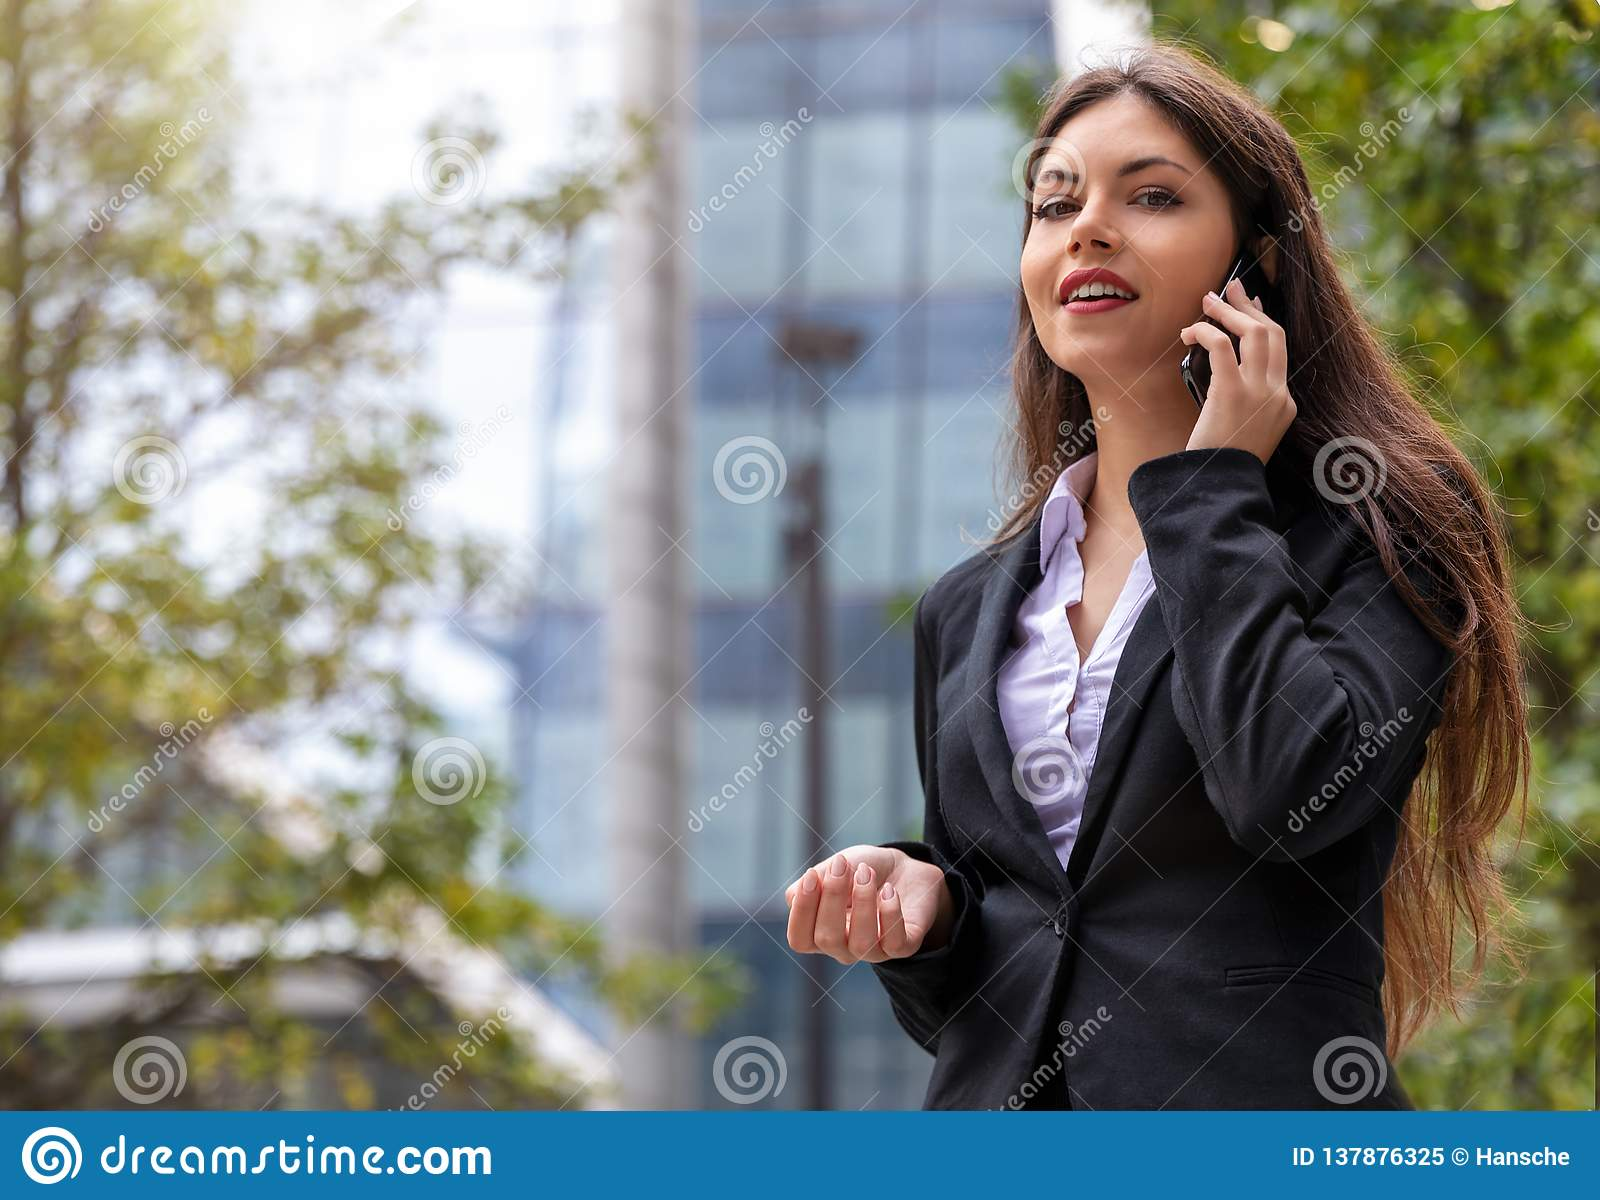 Businesswoman looking into camera outdoors in the city